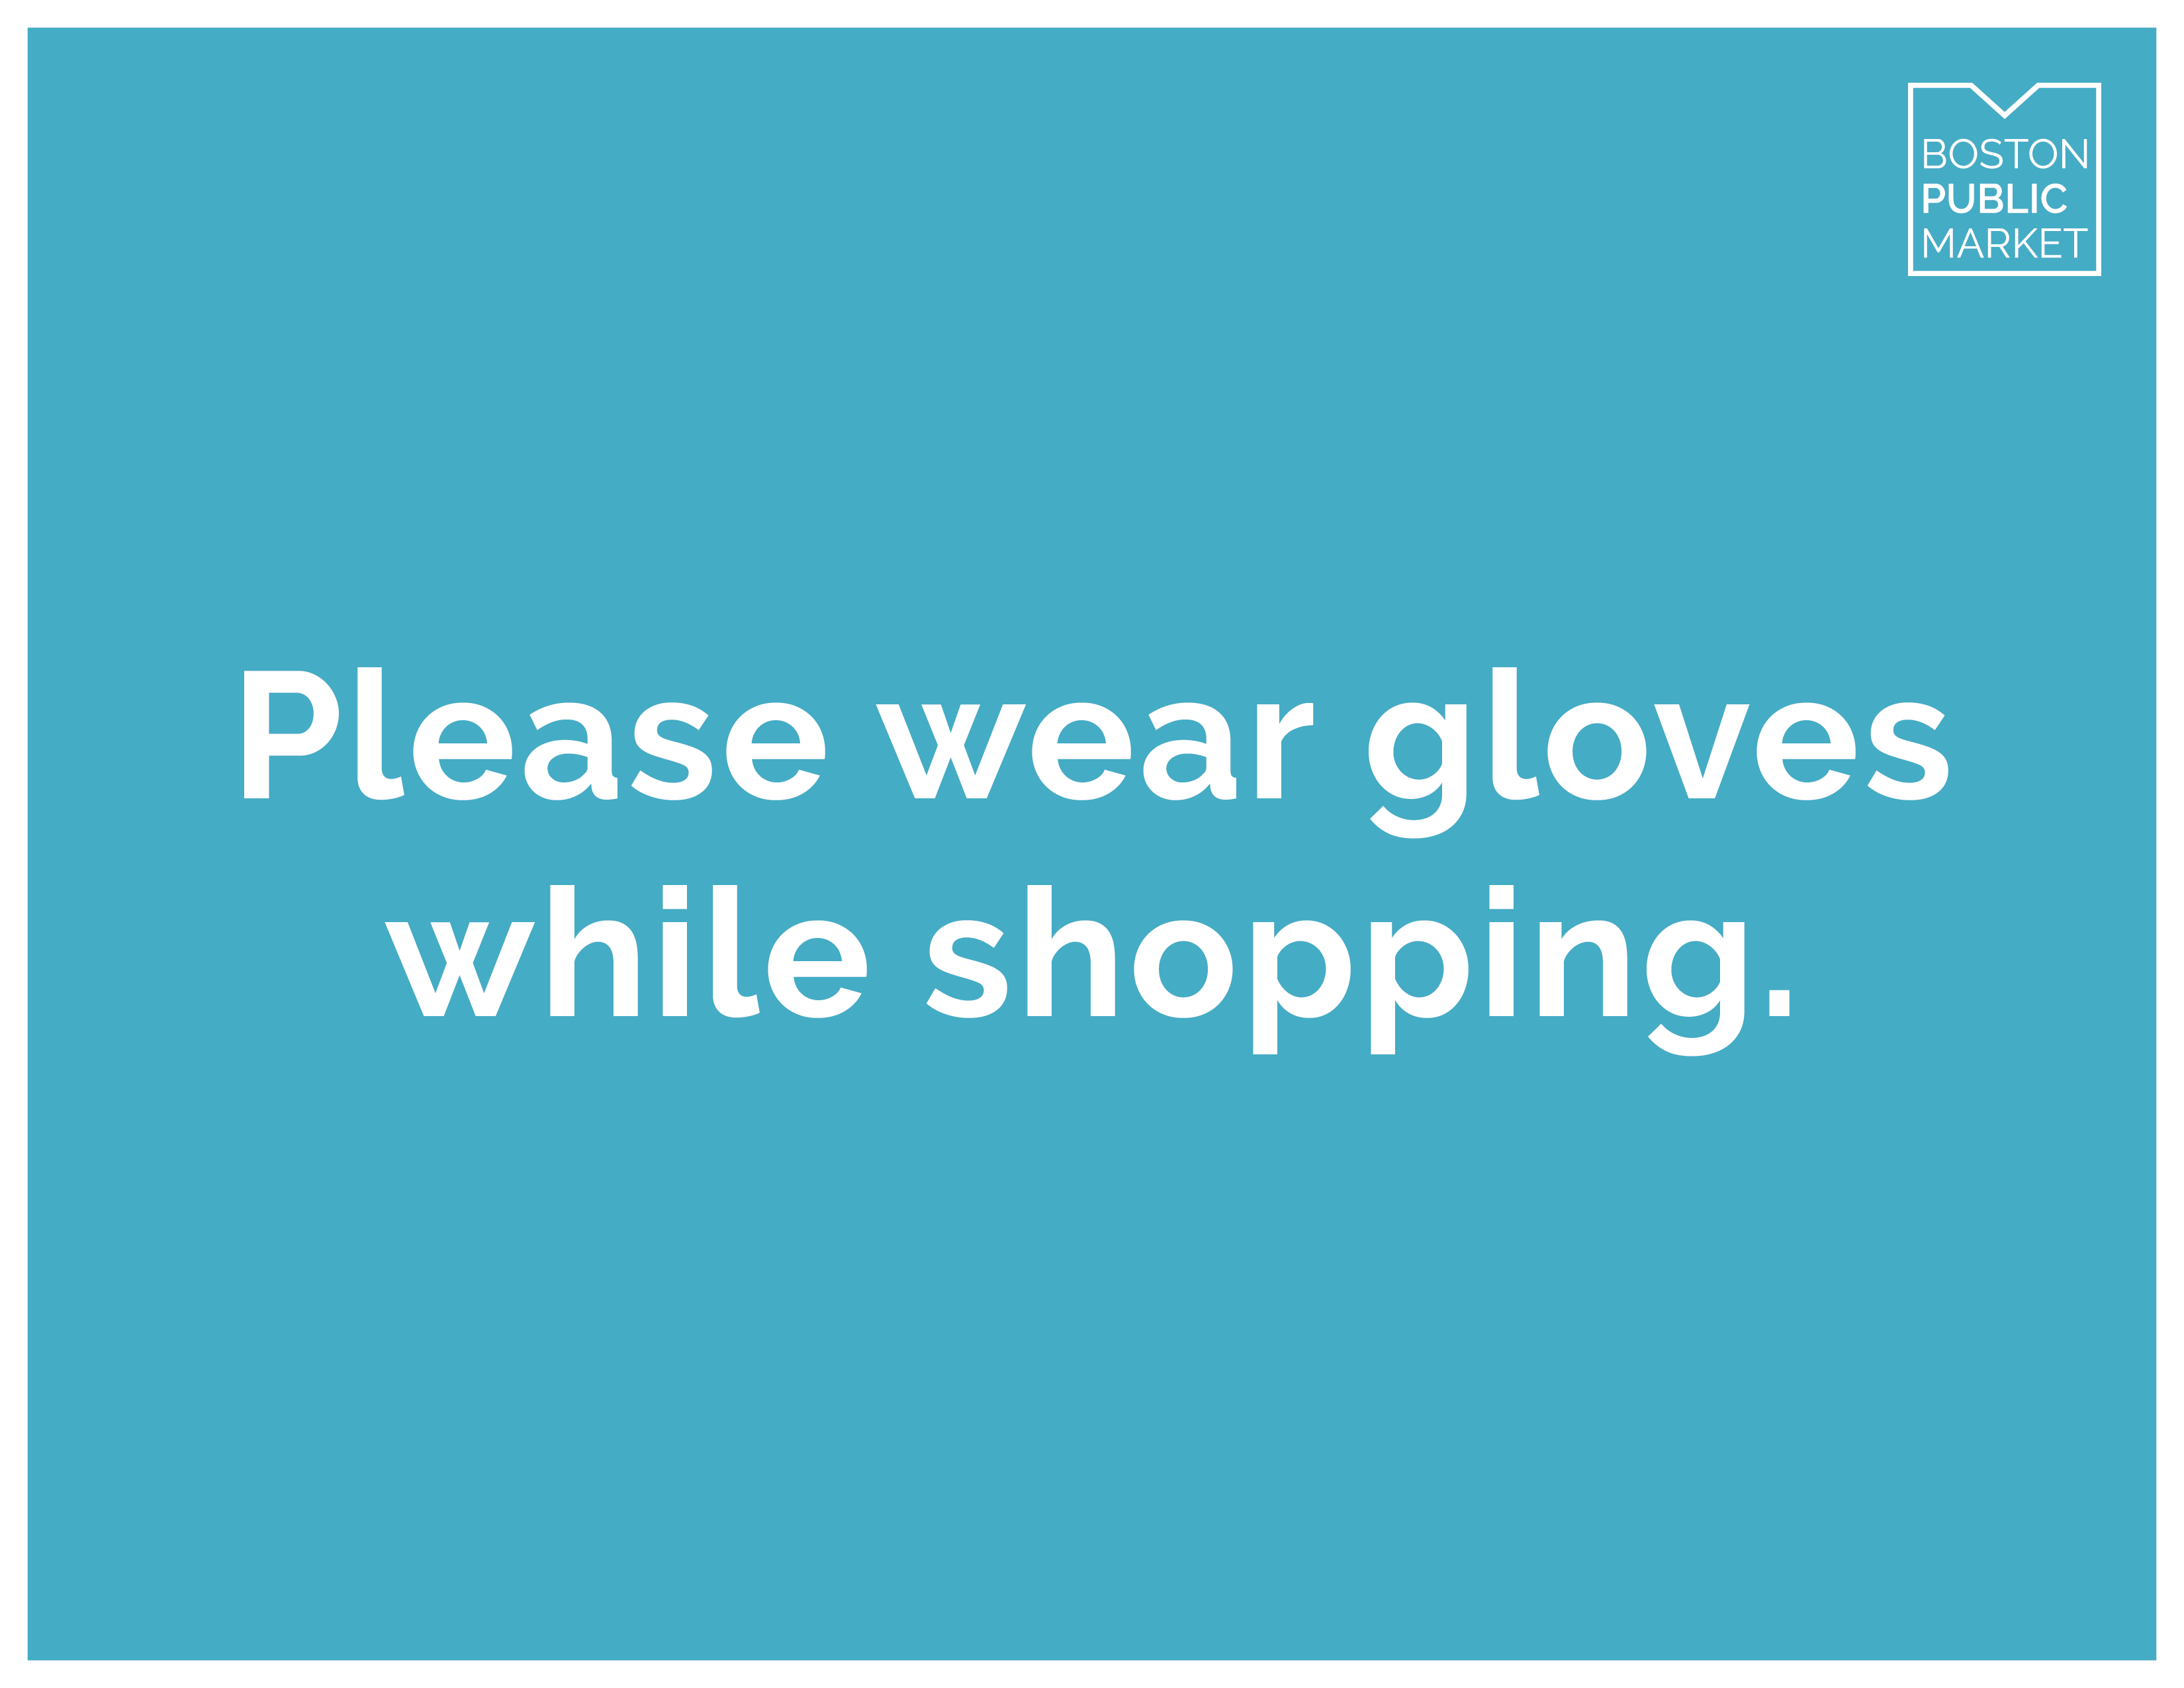 BPM_COVID_signs_Please Use Gloves